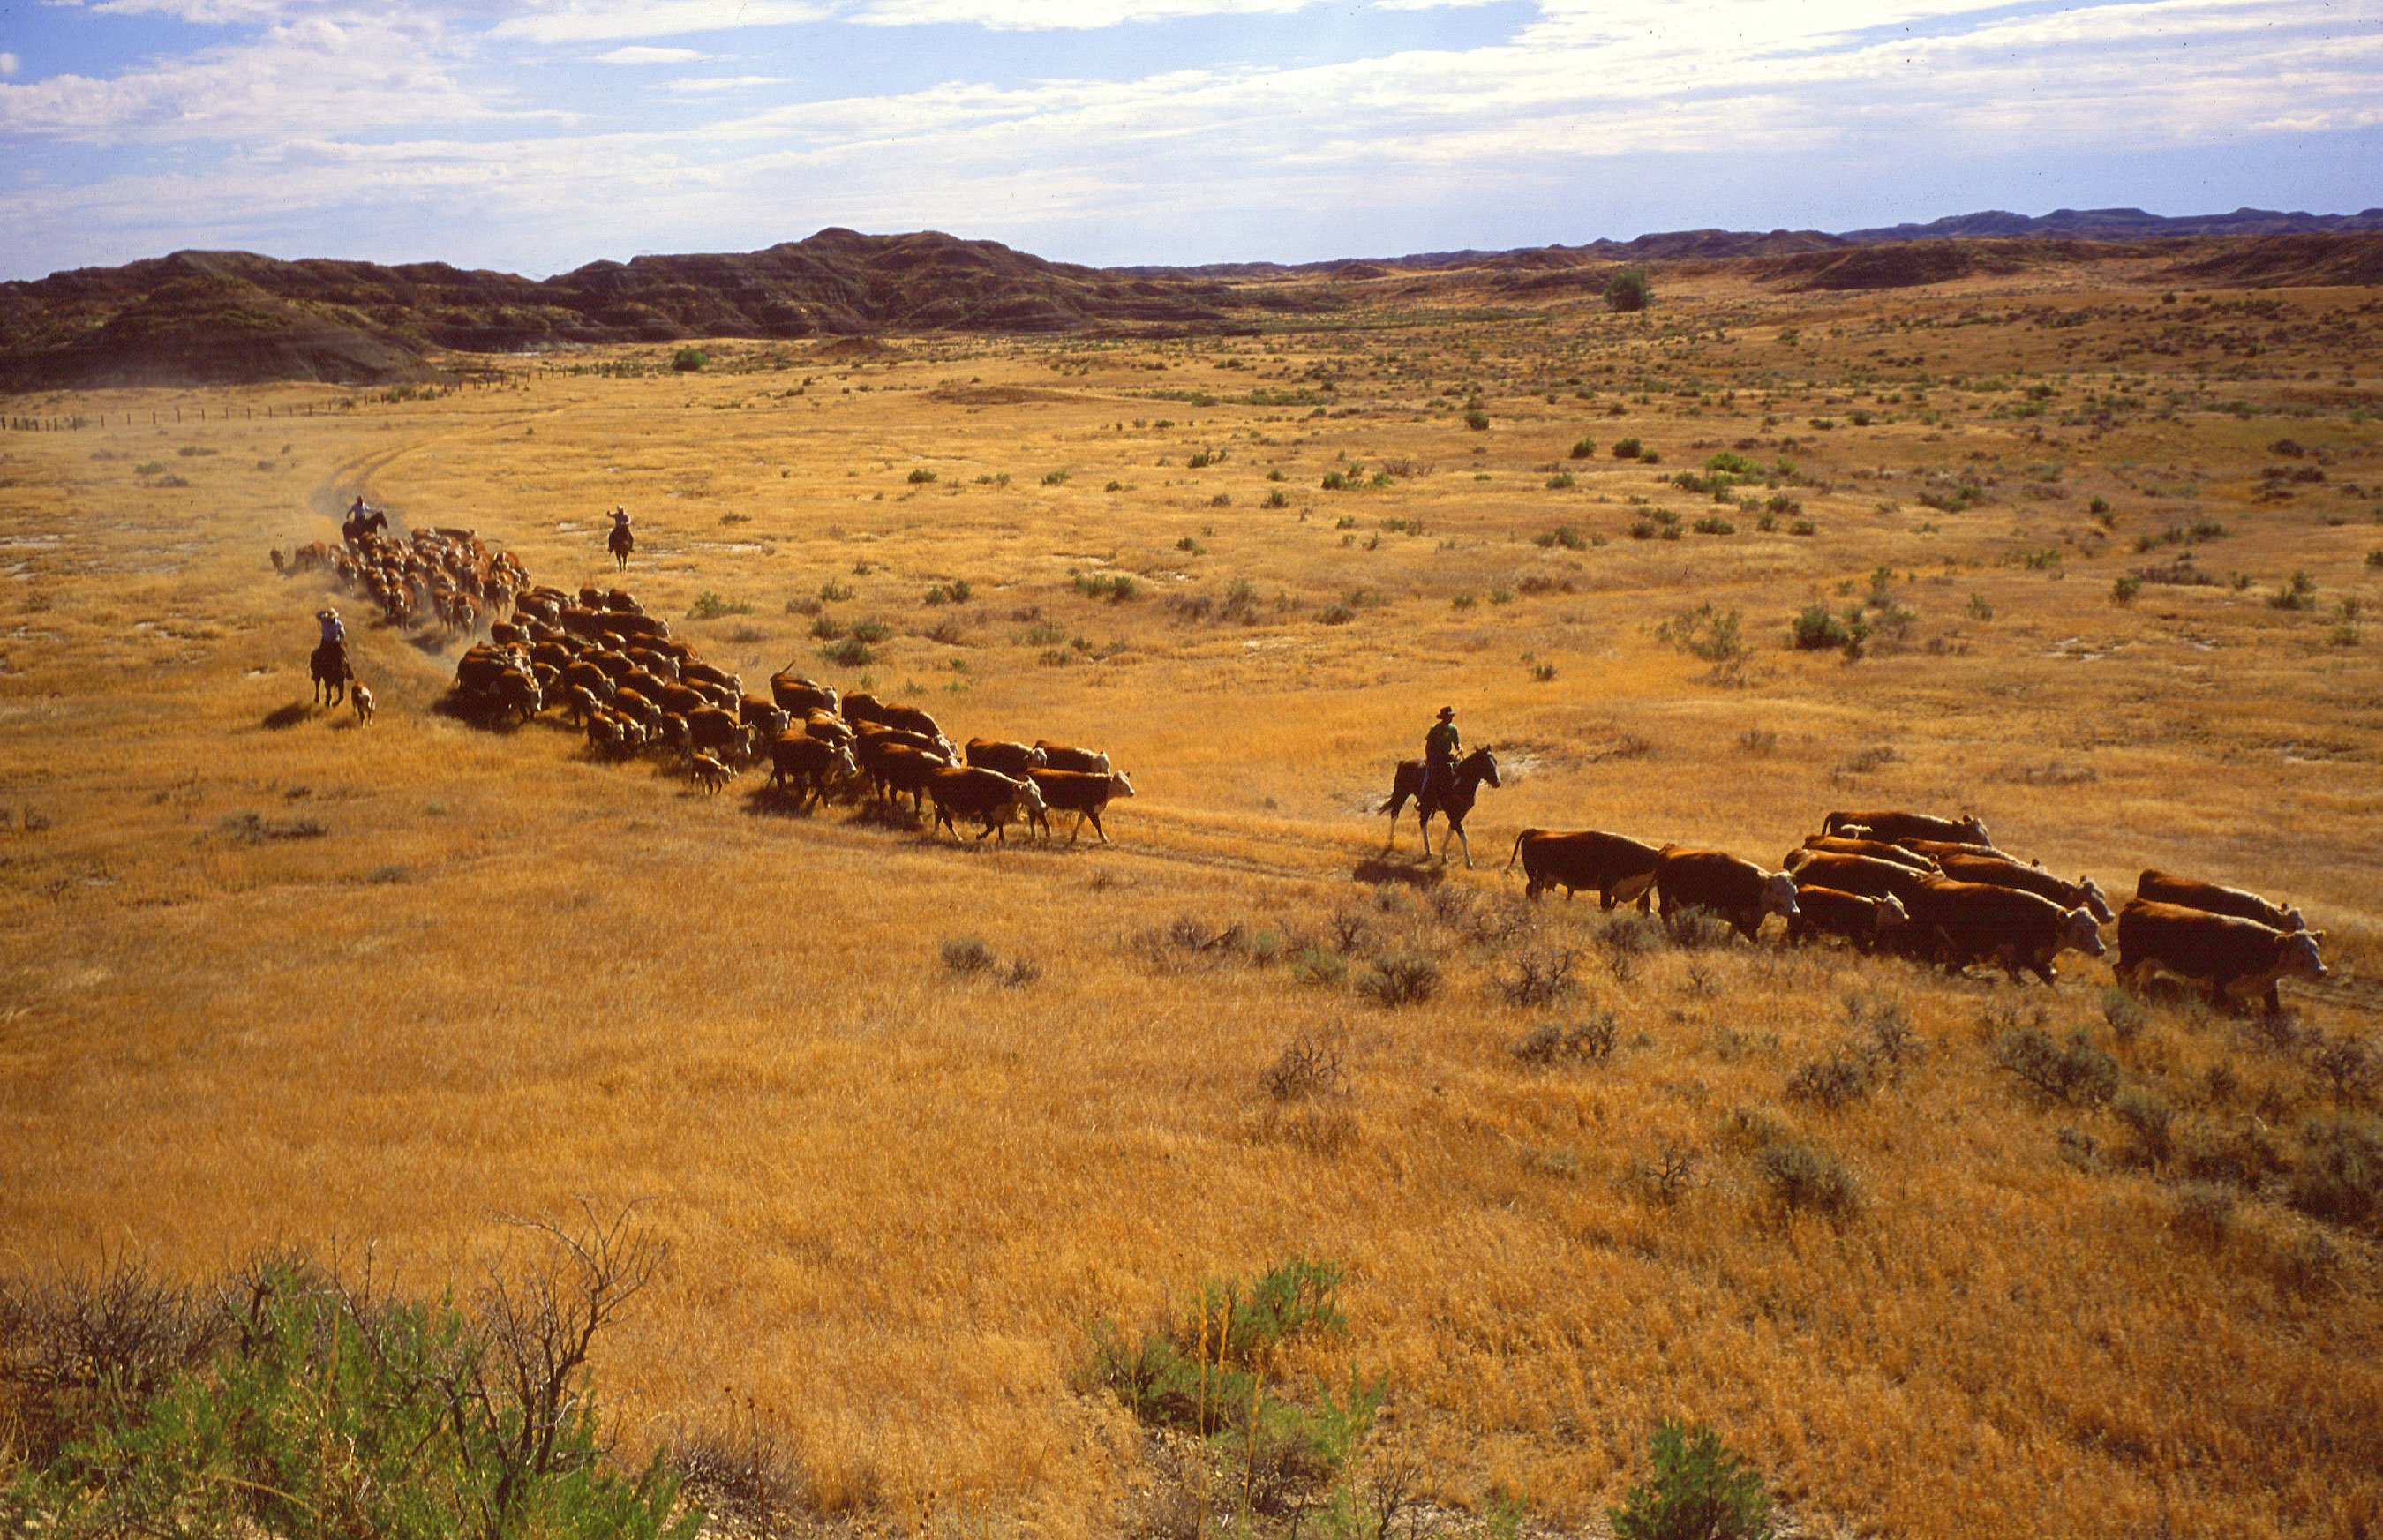 File:Cattle.jpg